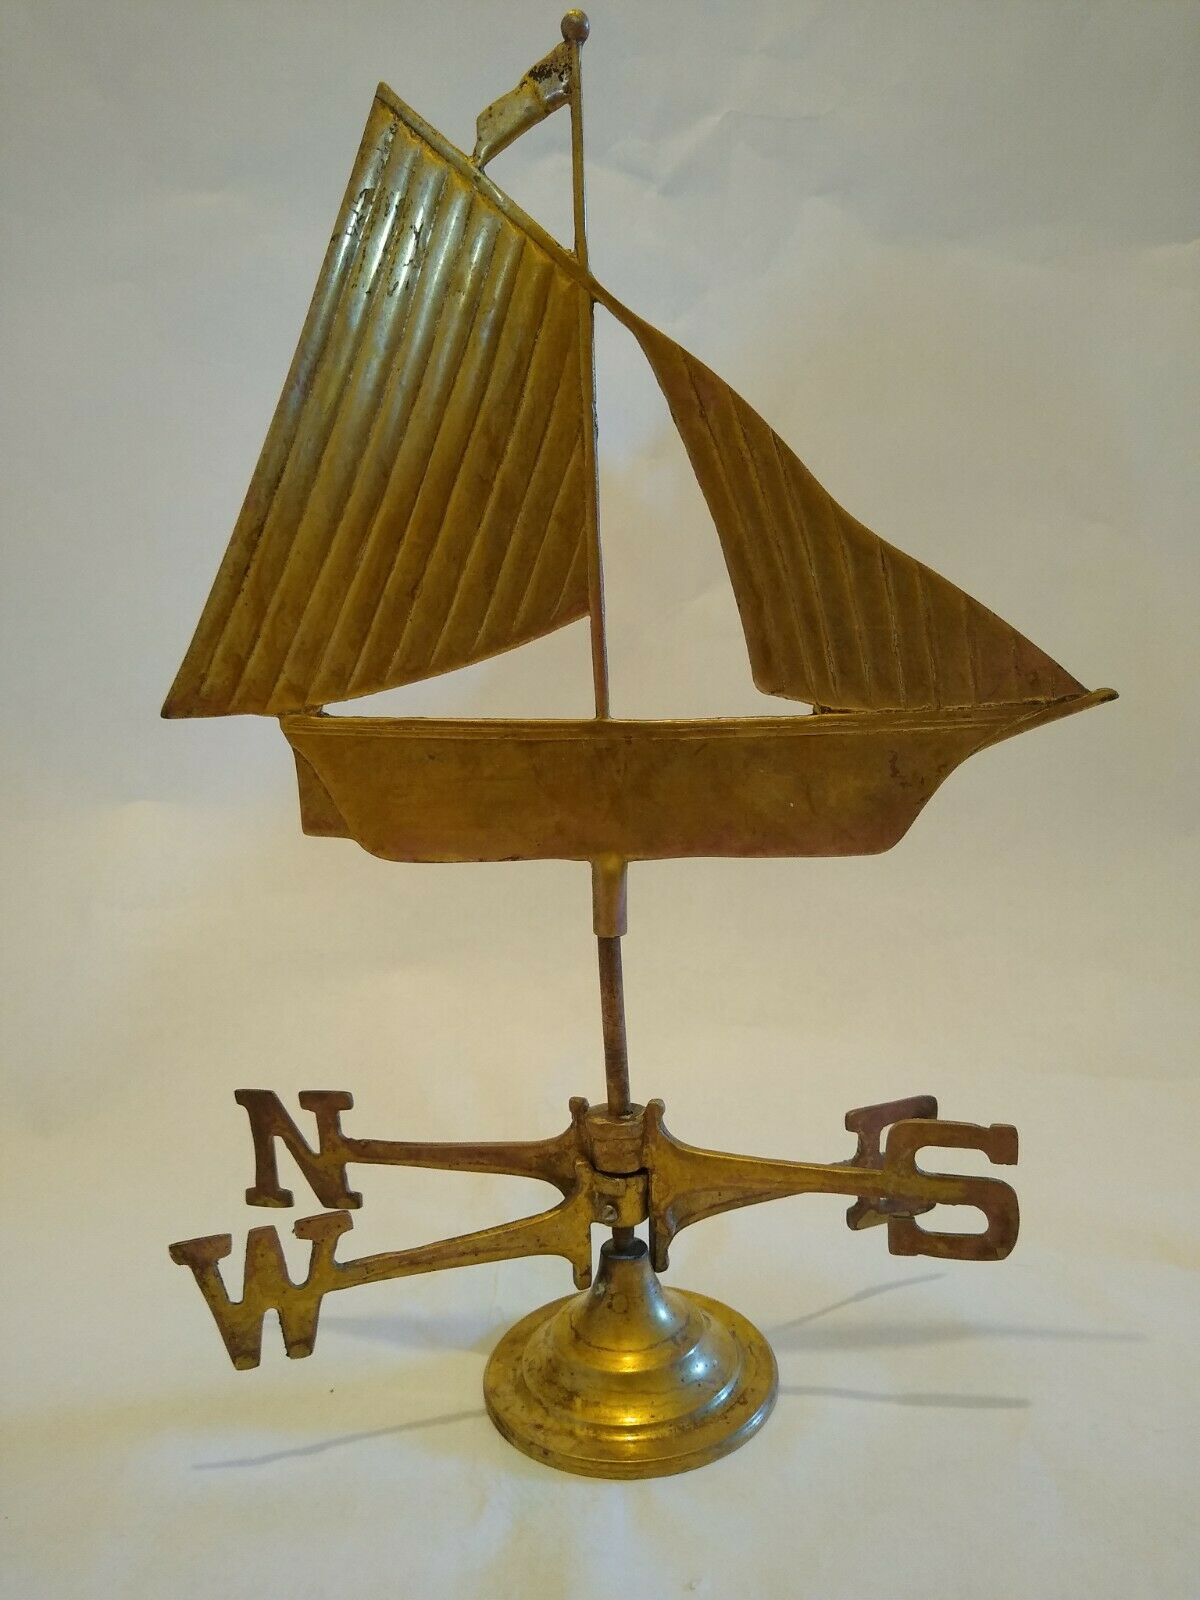 Antique Copper and Brass Sailboat Weathervane on Stand